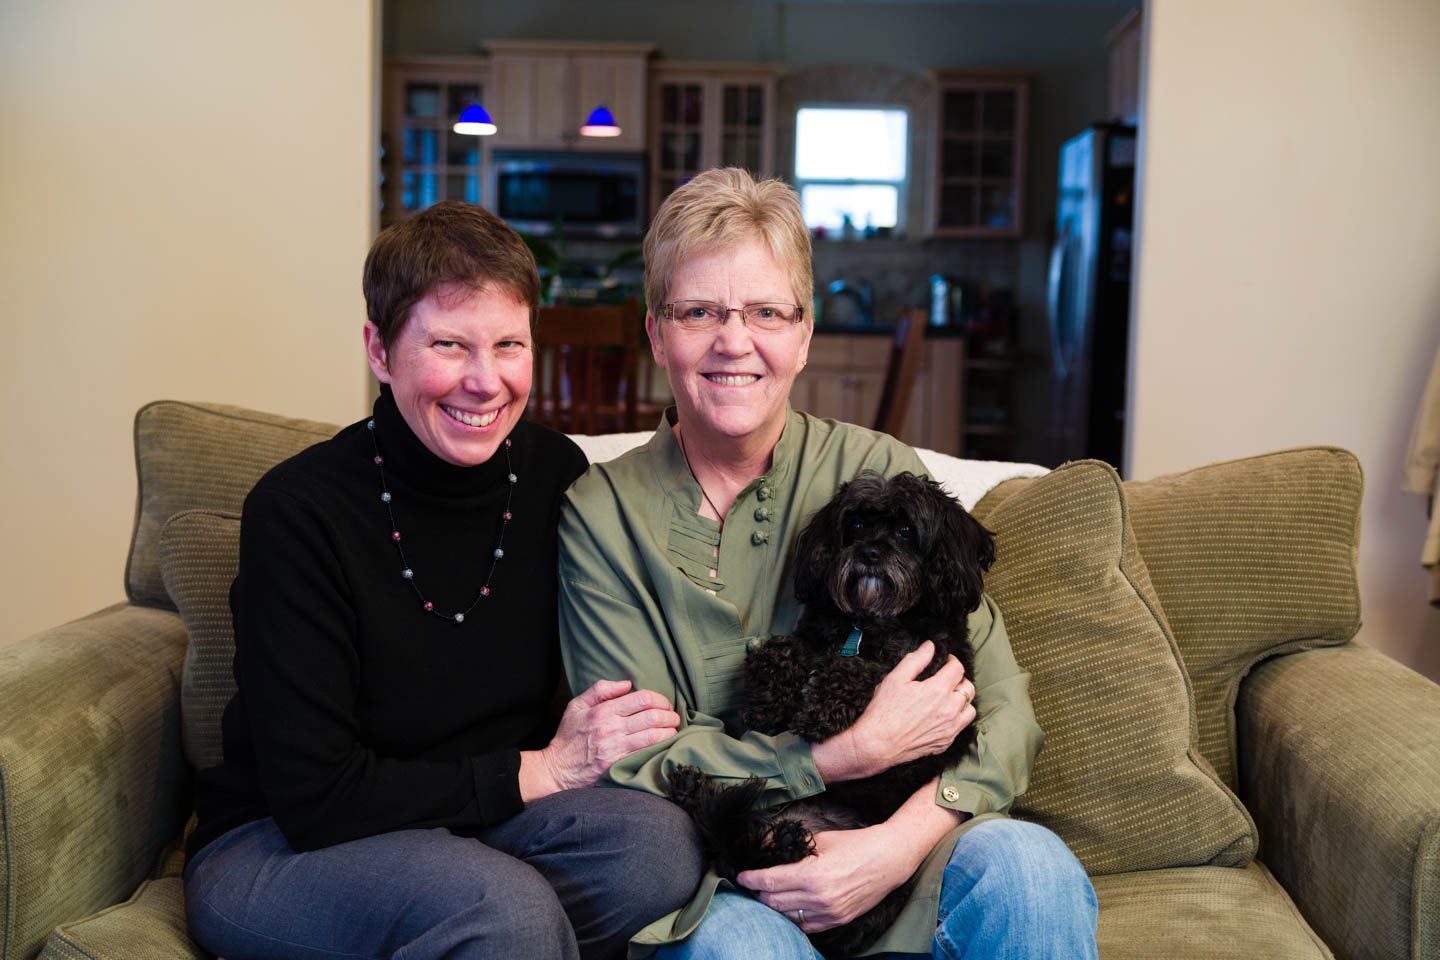 Family Portrait of Kody Partridge and Laurie Wood